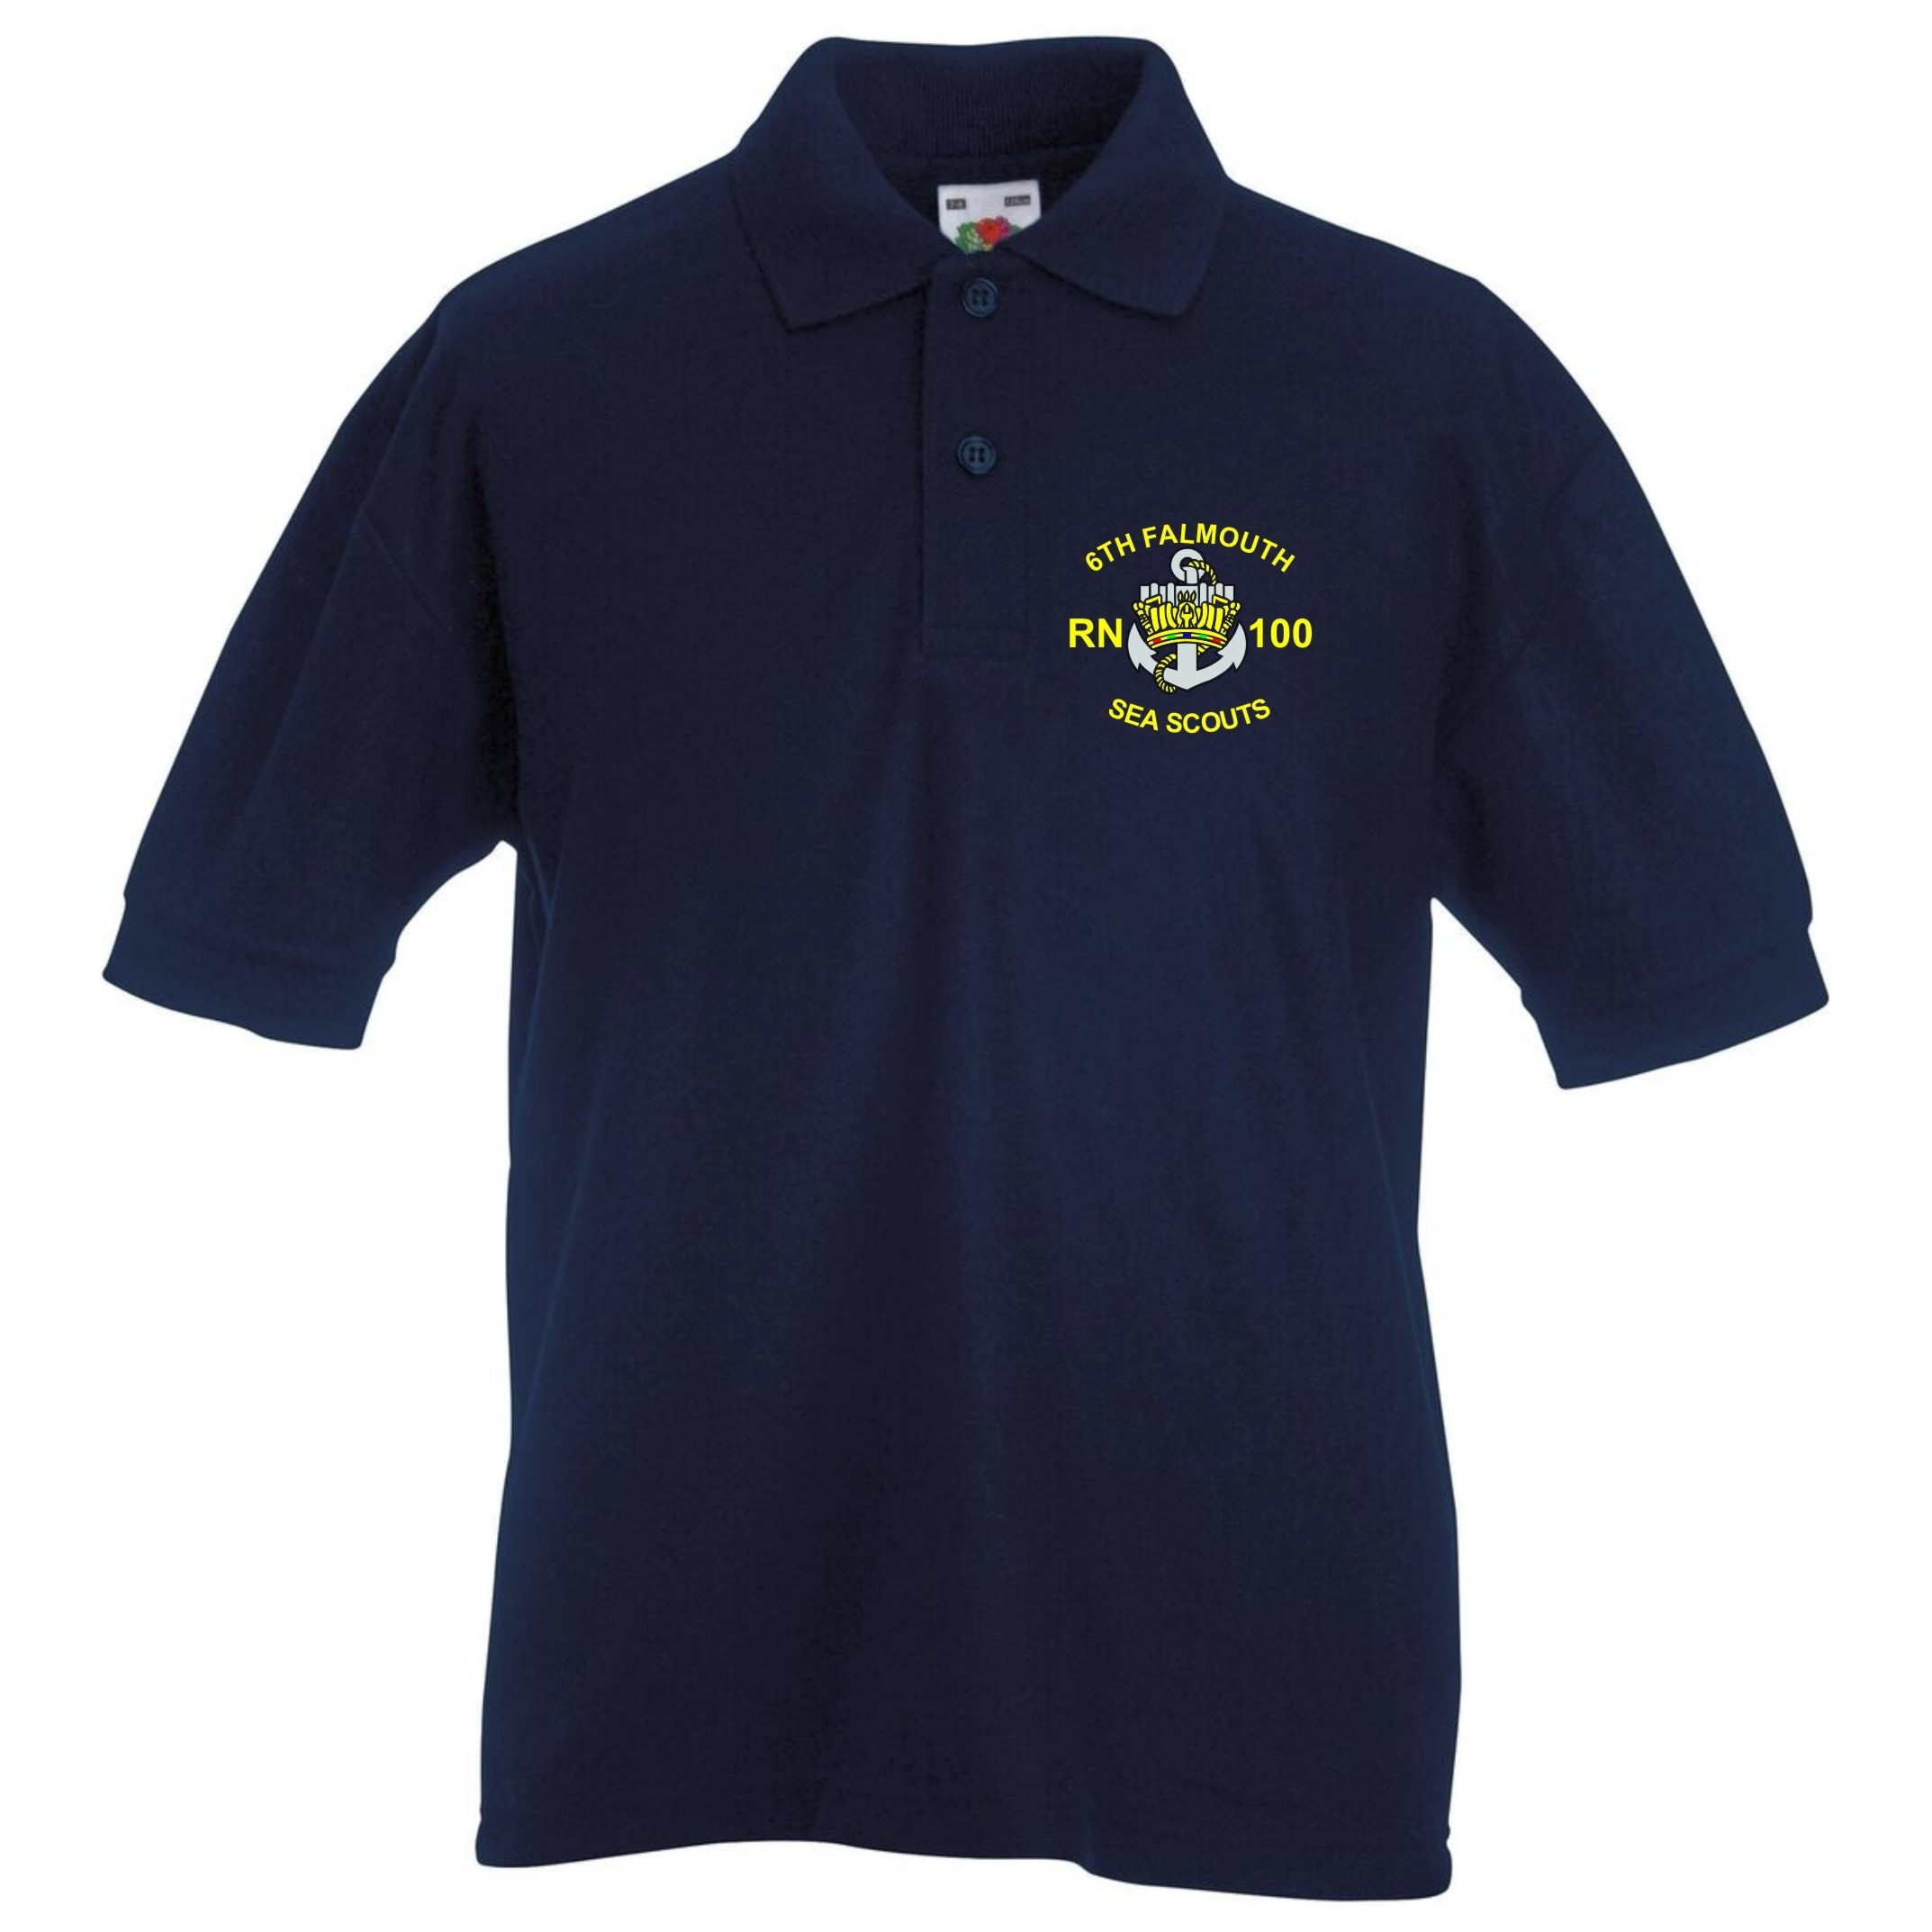 Kids embroidered polo shirt saints screen print for Personalized polo shirts for toddlers